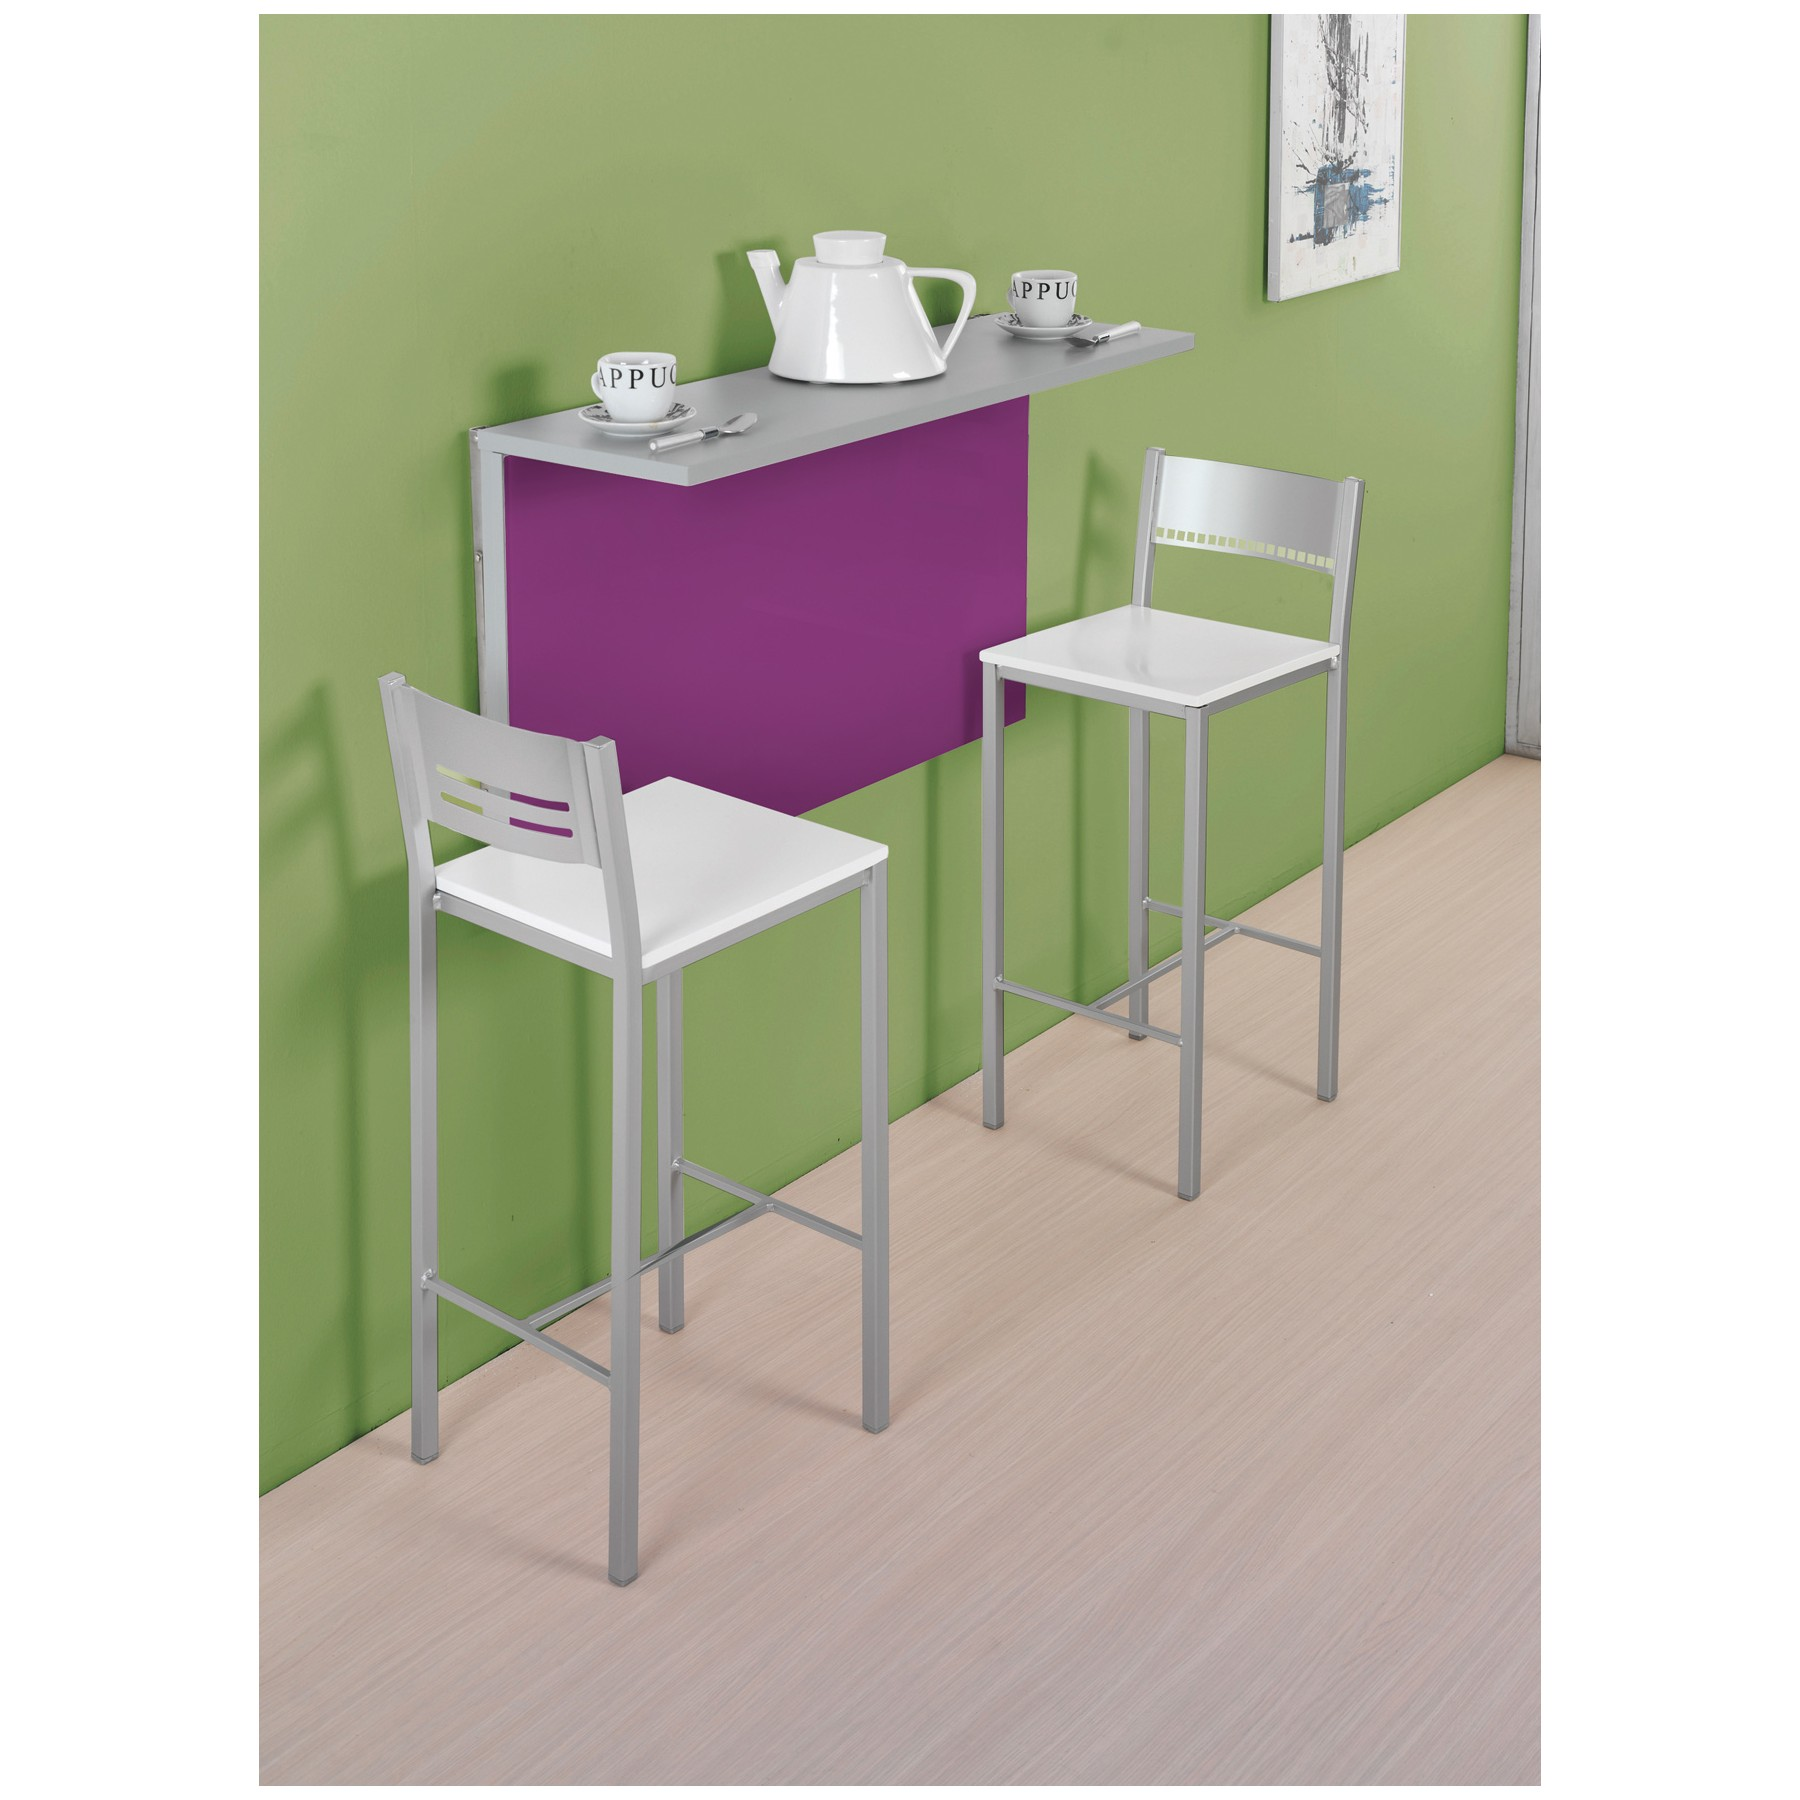 Conjunto de mesa de cocina de pared abatible y taburetes - Mesa abatible de pared carrefour ...